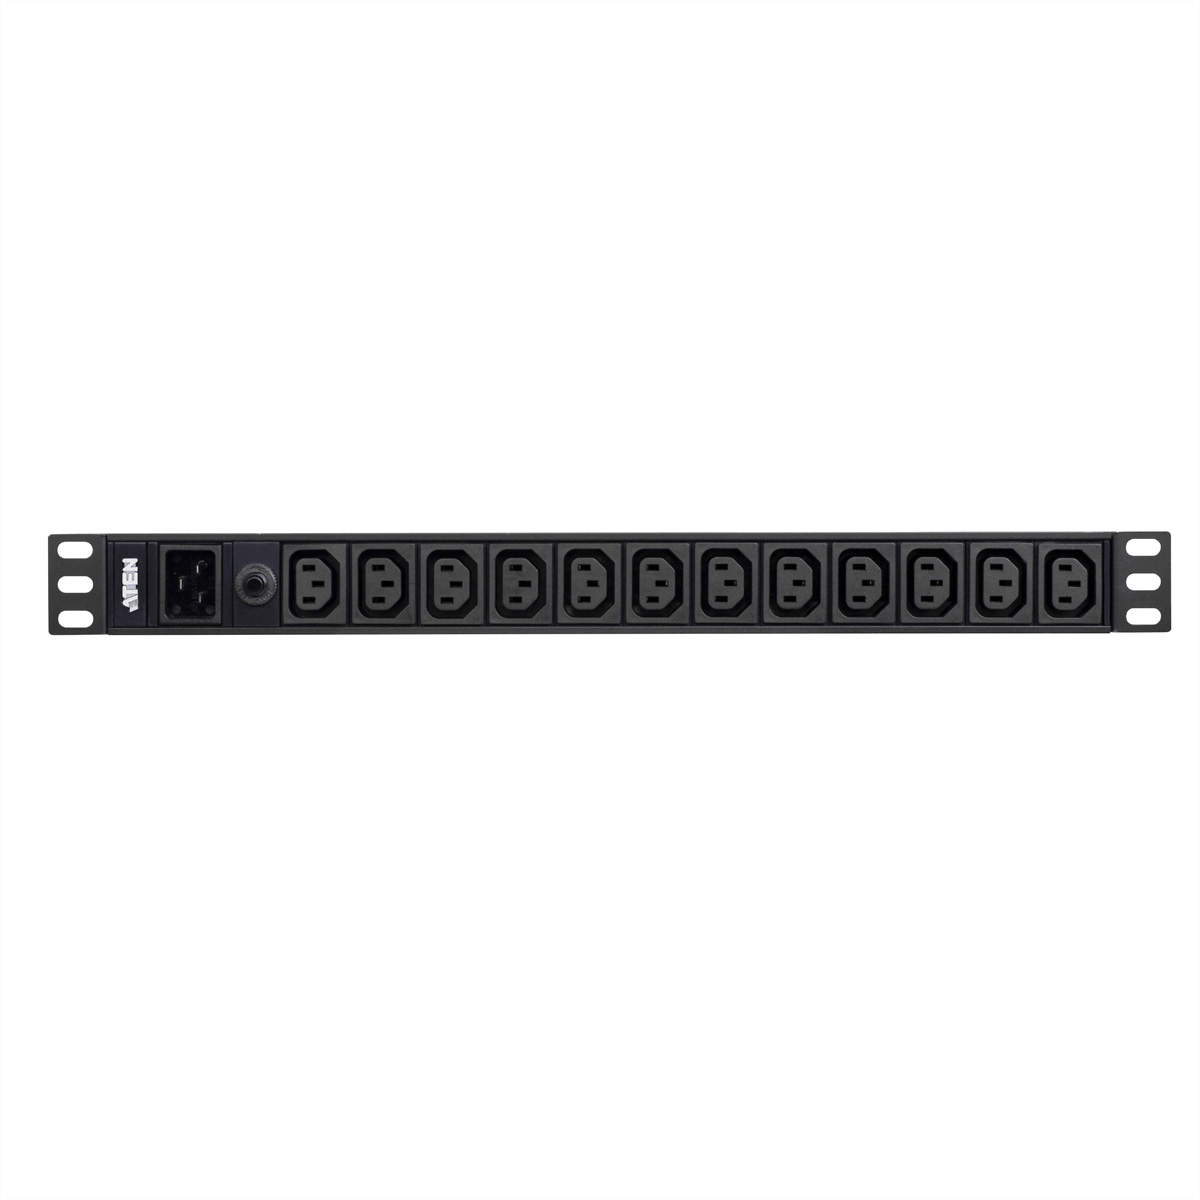 ATEN PE0212G 1U 16A 12-Port Basic PDU